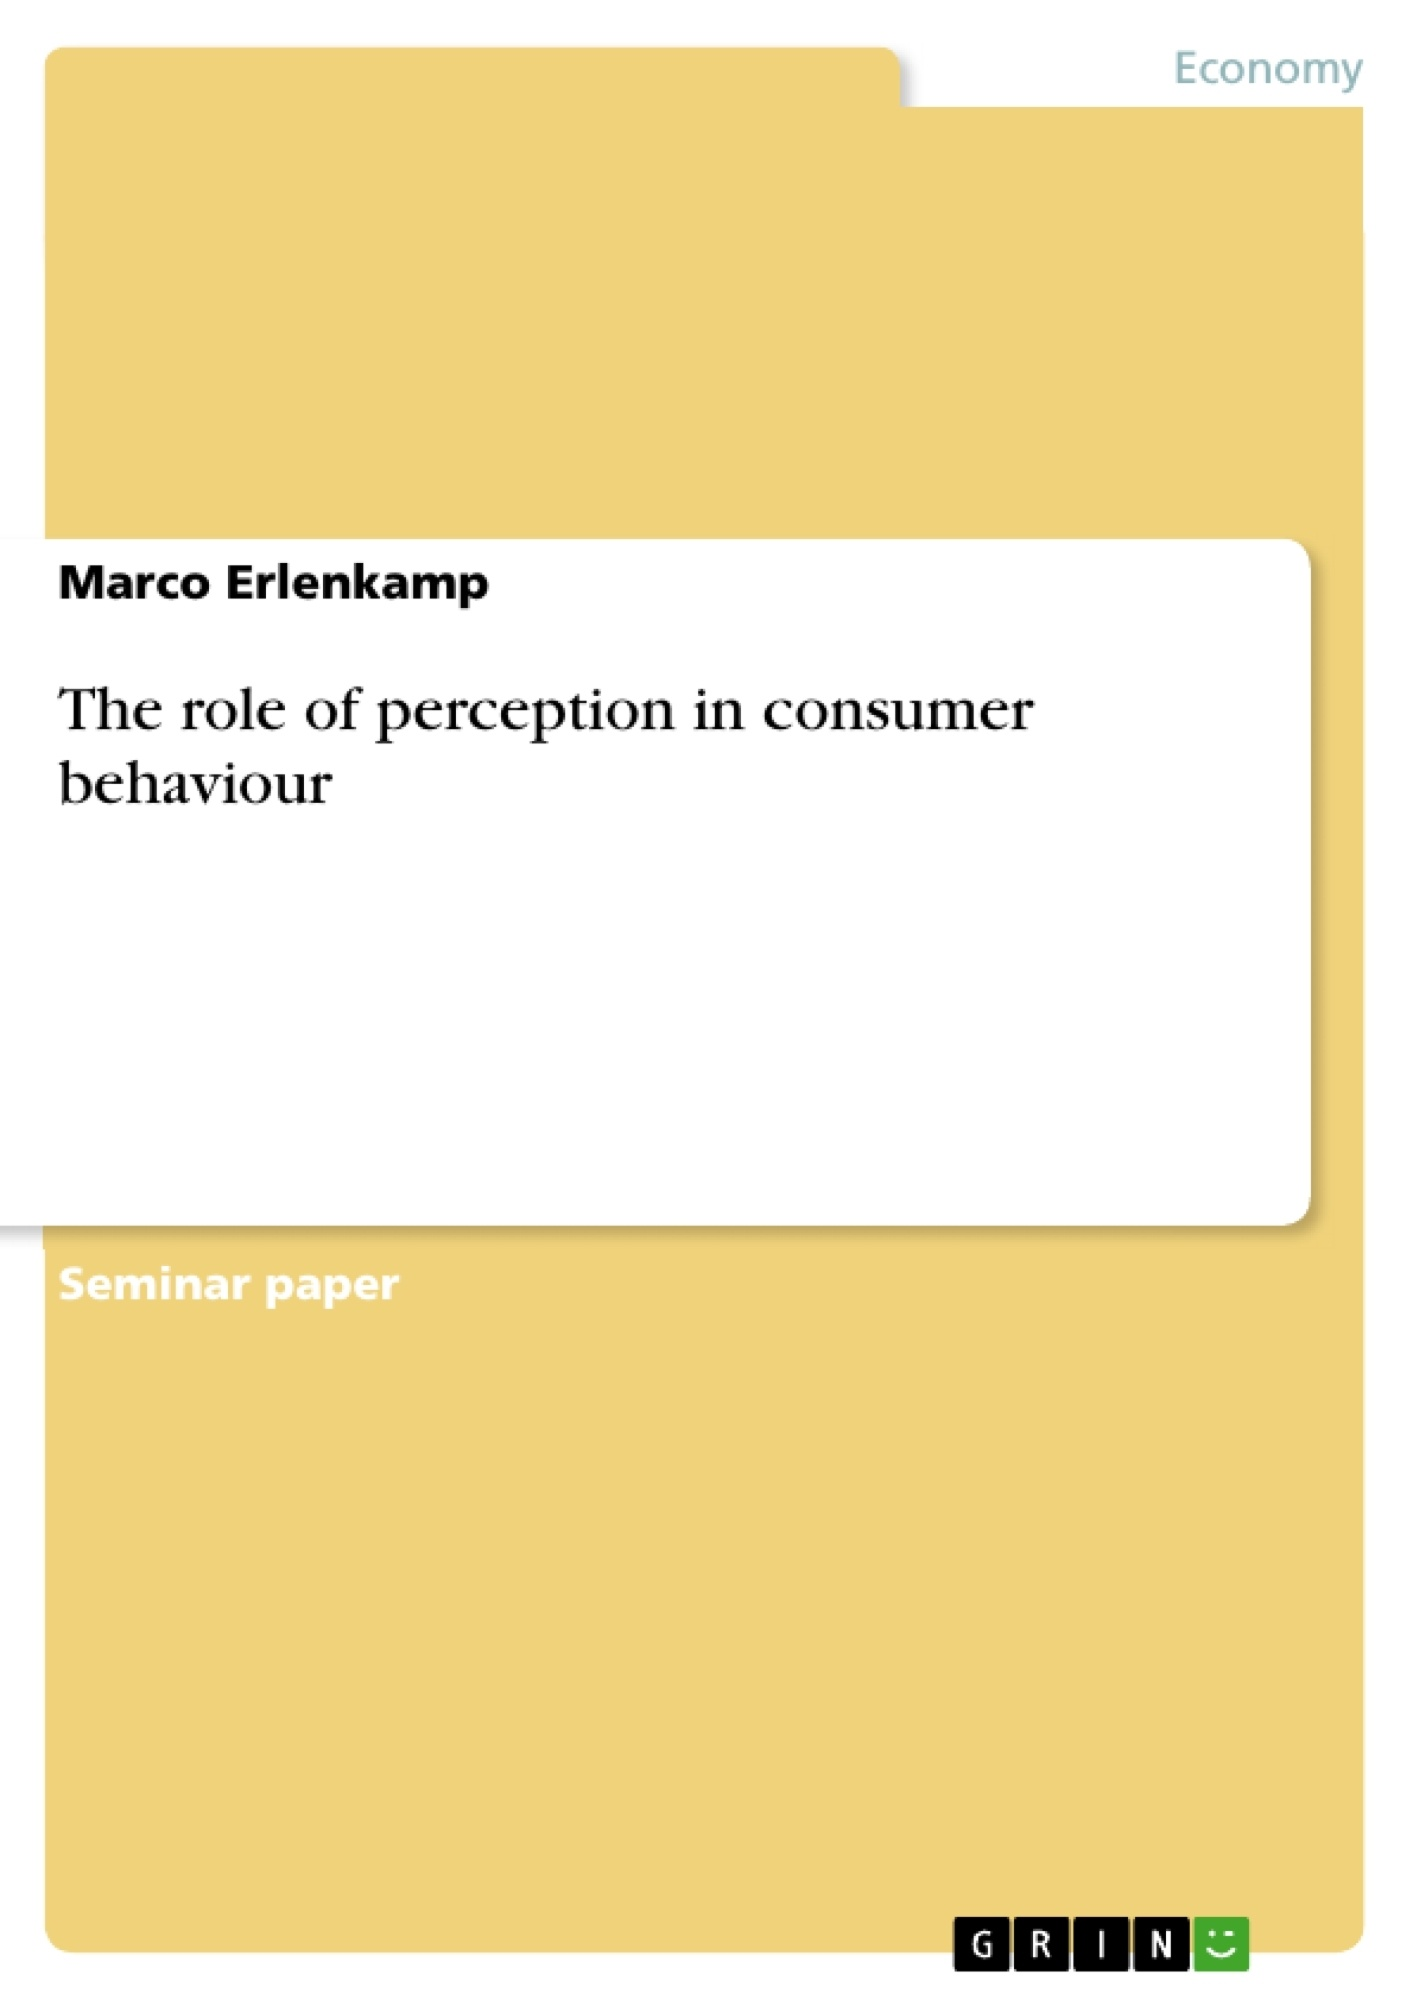 Title: The role of perception in consumer behaviour